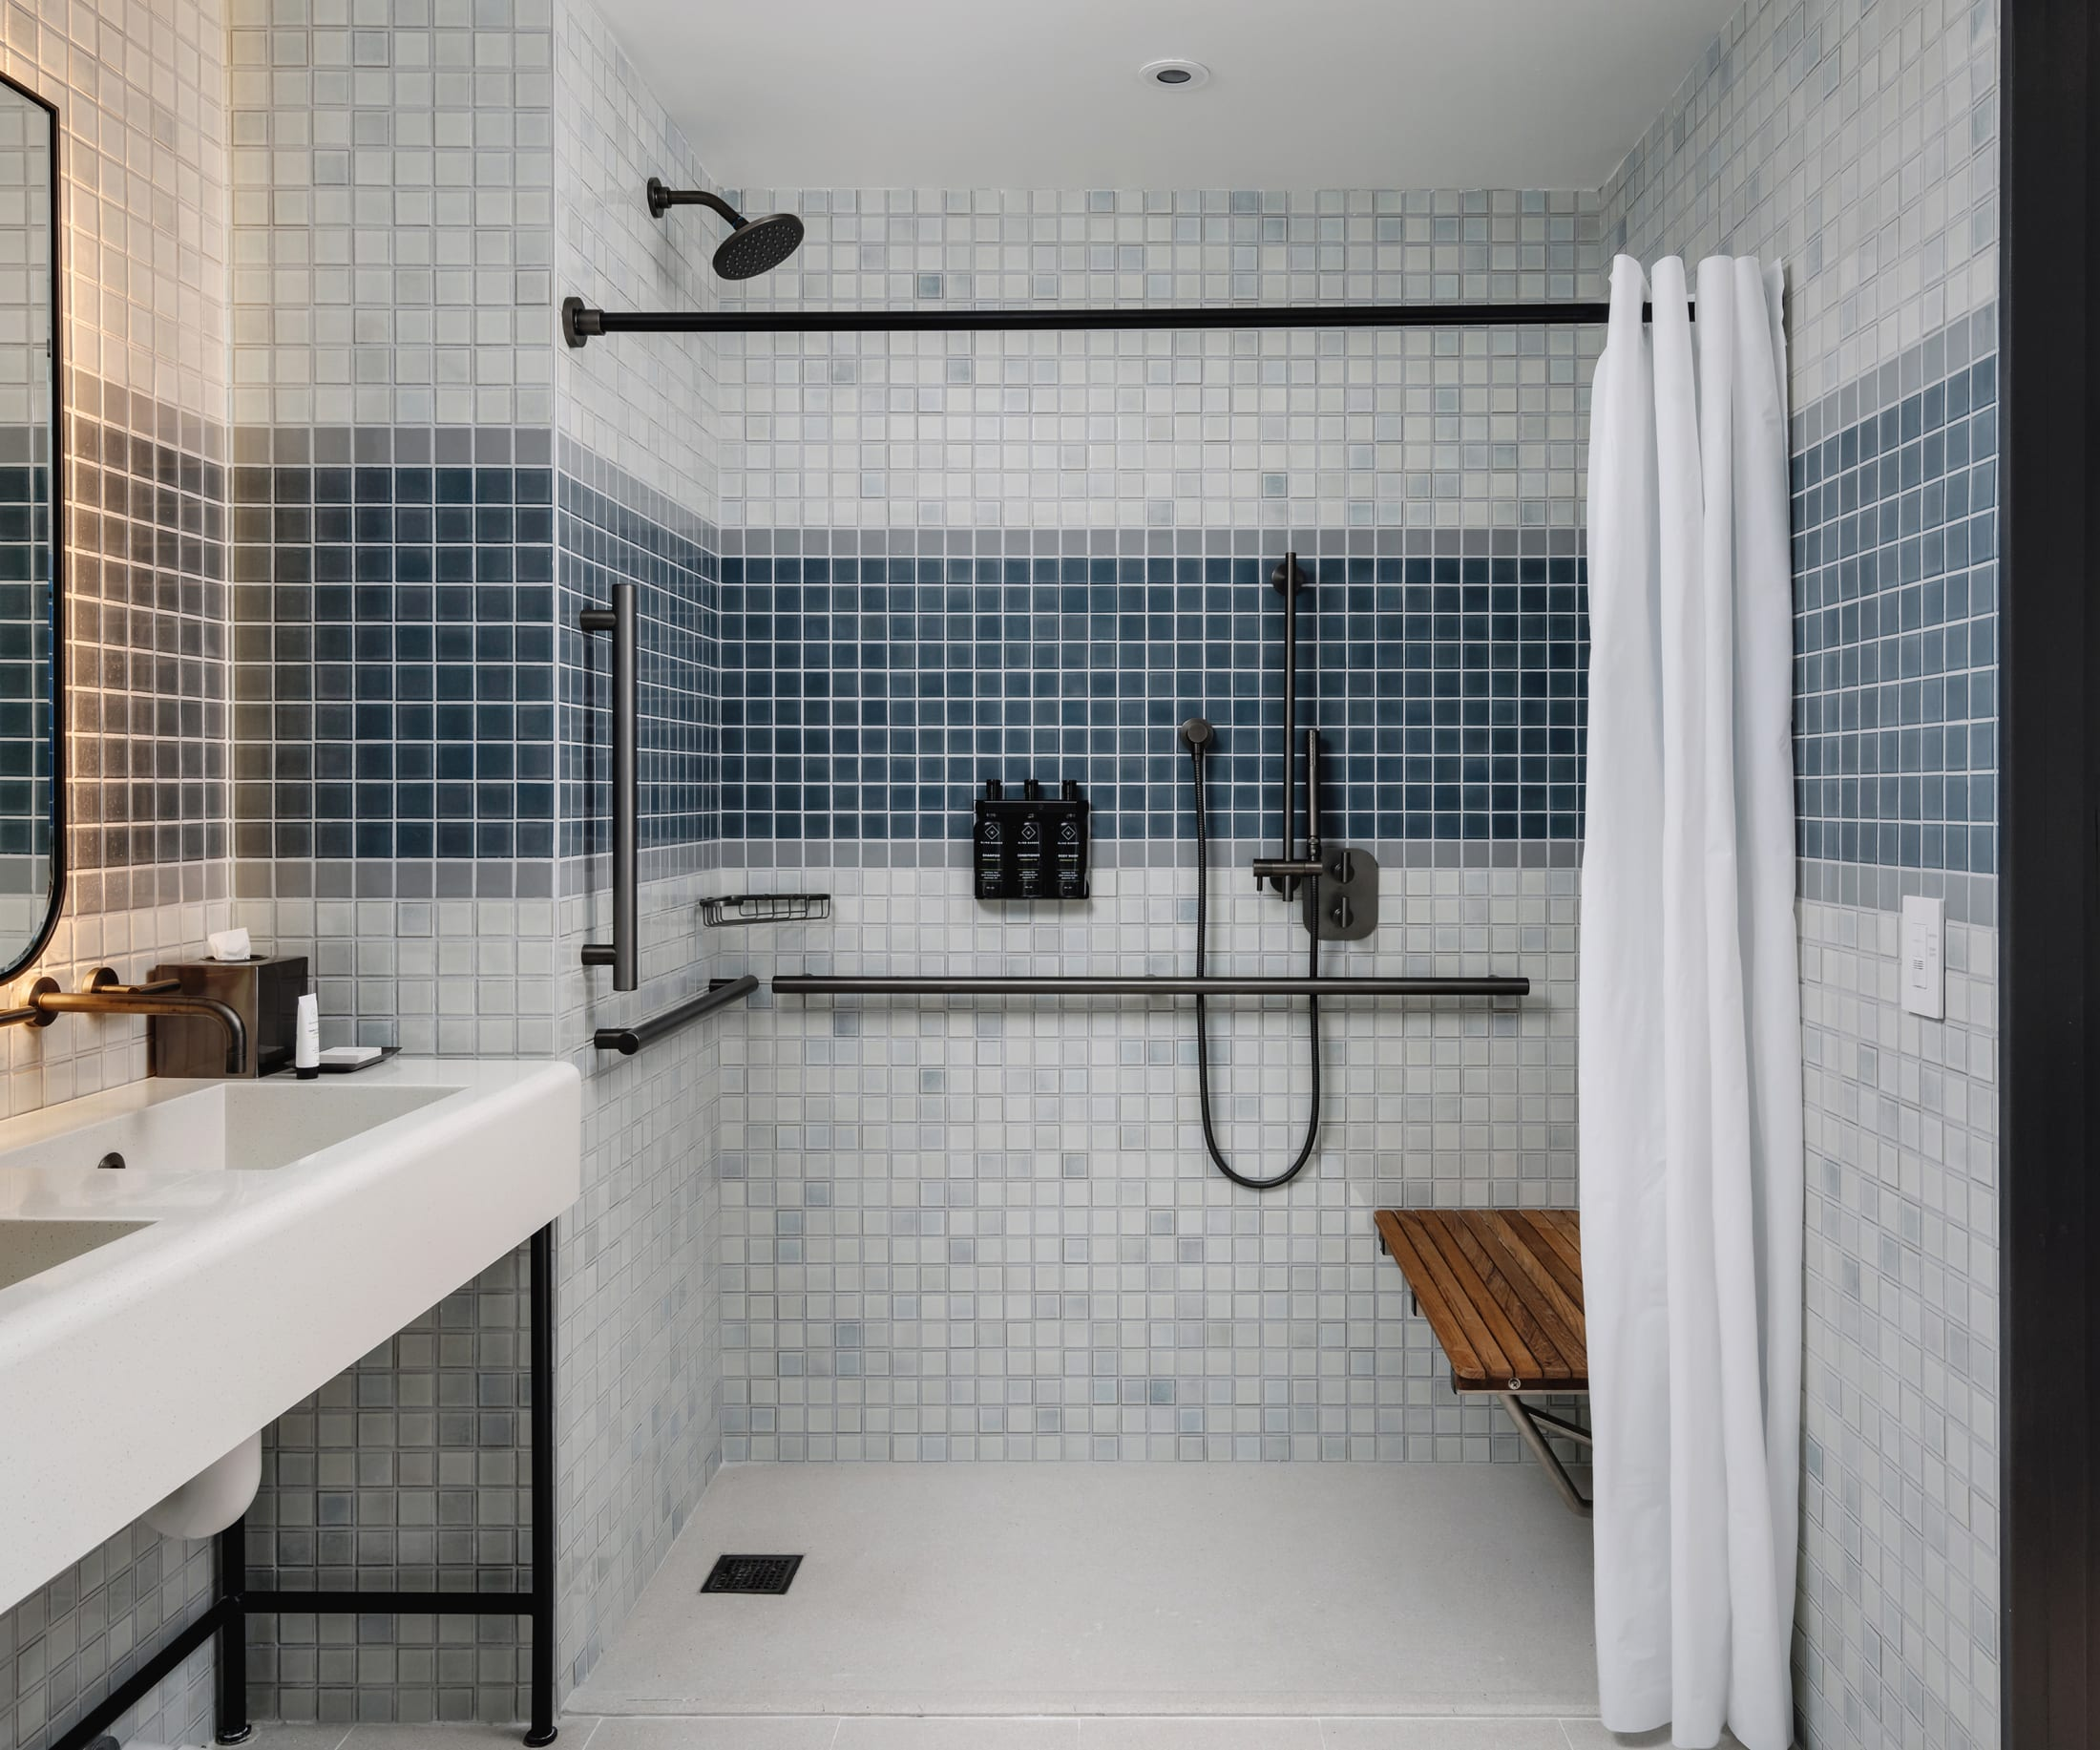 Arlo Midtown guest bathroom with white and blue tiled walls and a rounded edge backlit mirror in the center above a white sink and to the left wall is a globe light and to the right is the glass shower door with towel hanging